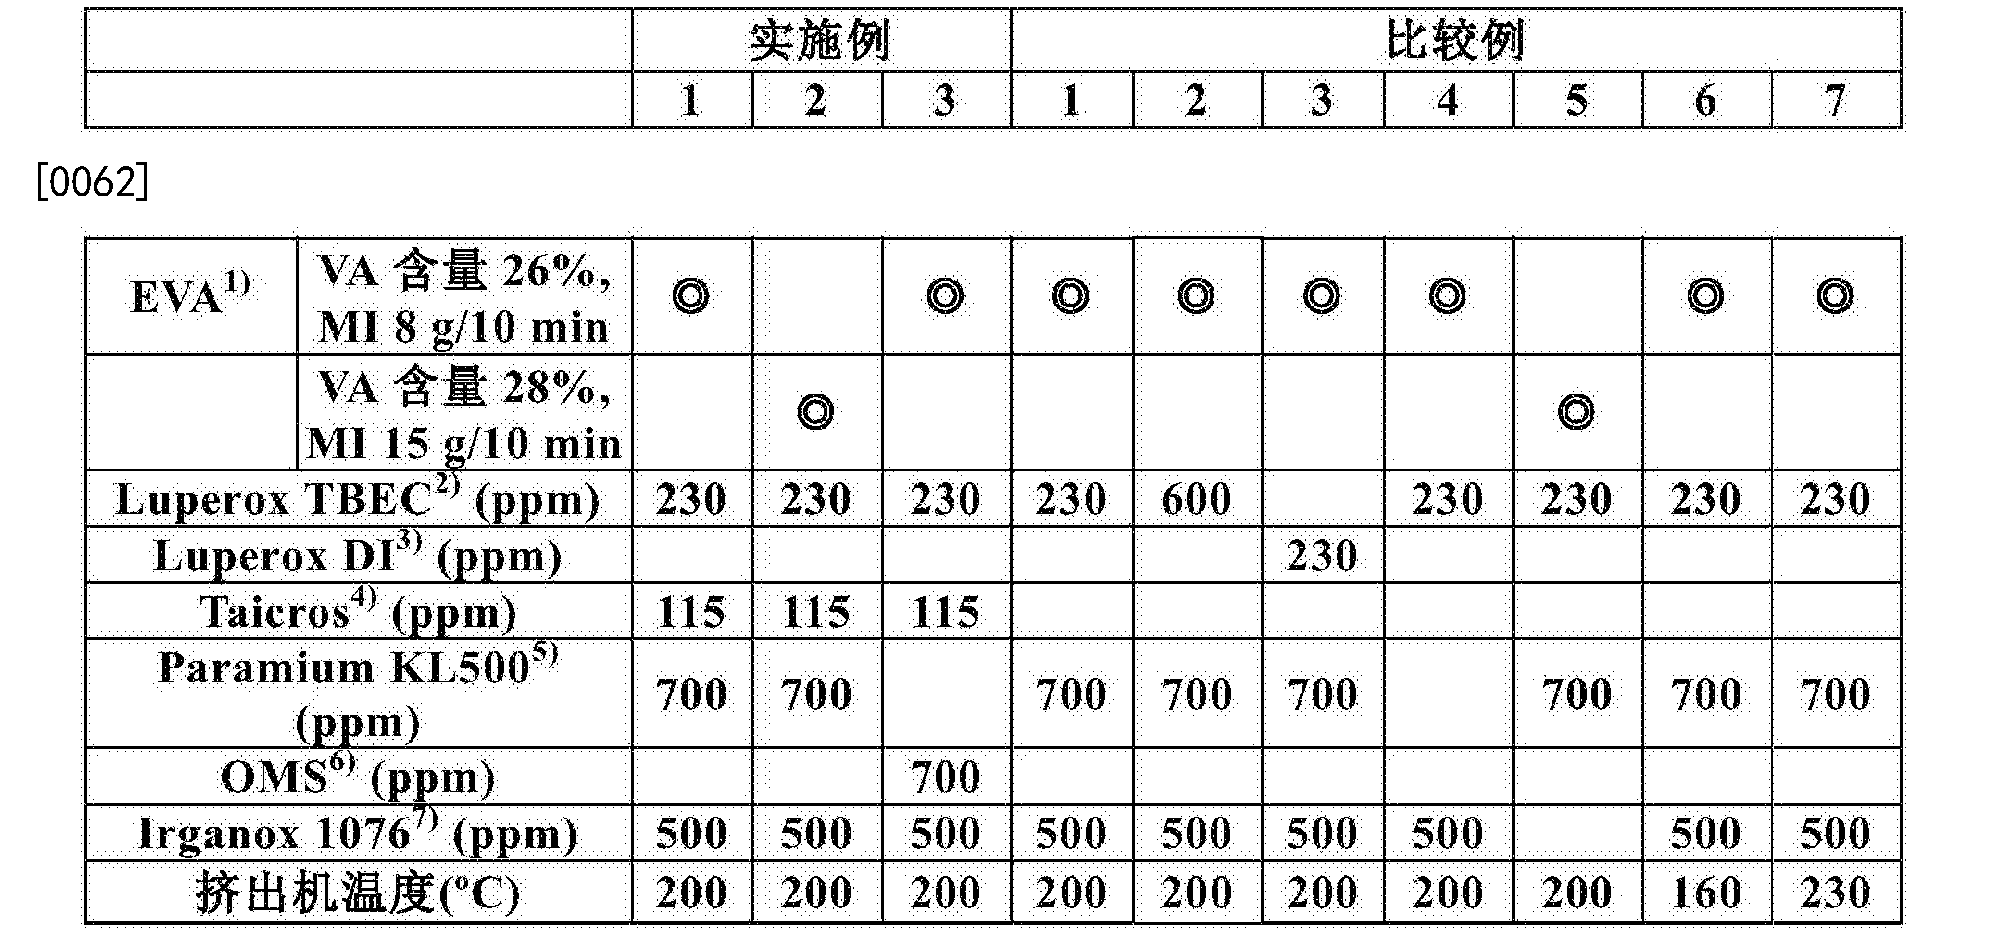 CN104419056B - Composition for the preparation of eva